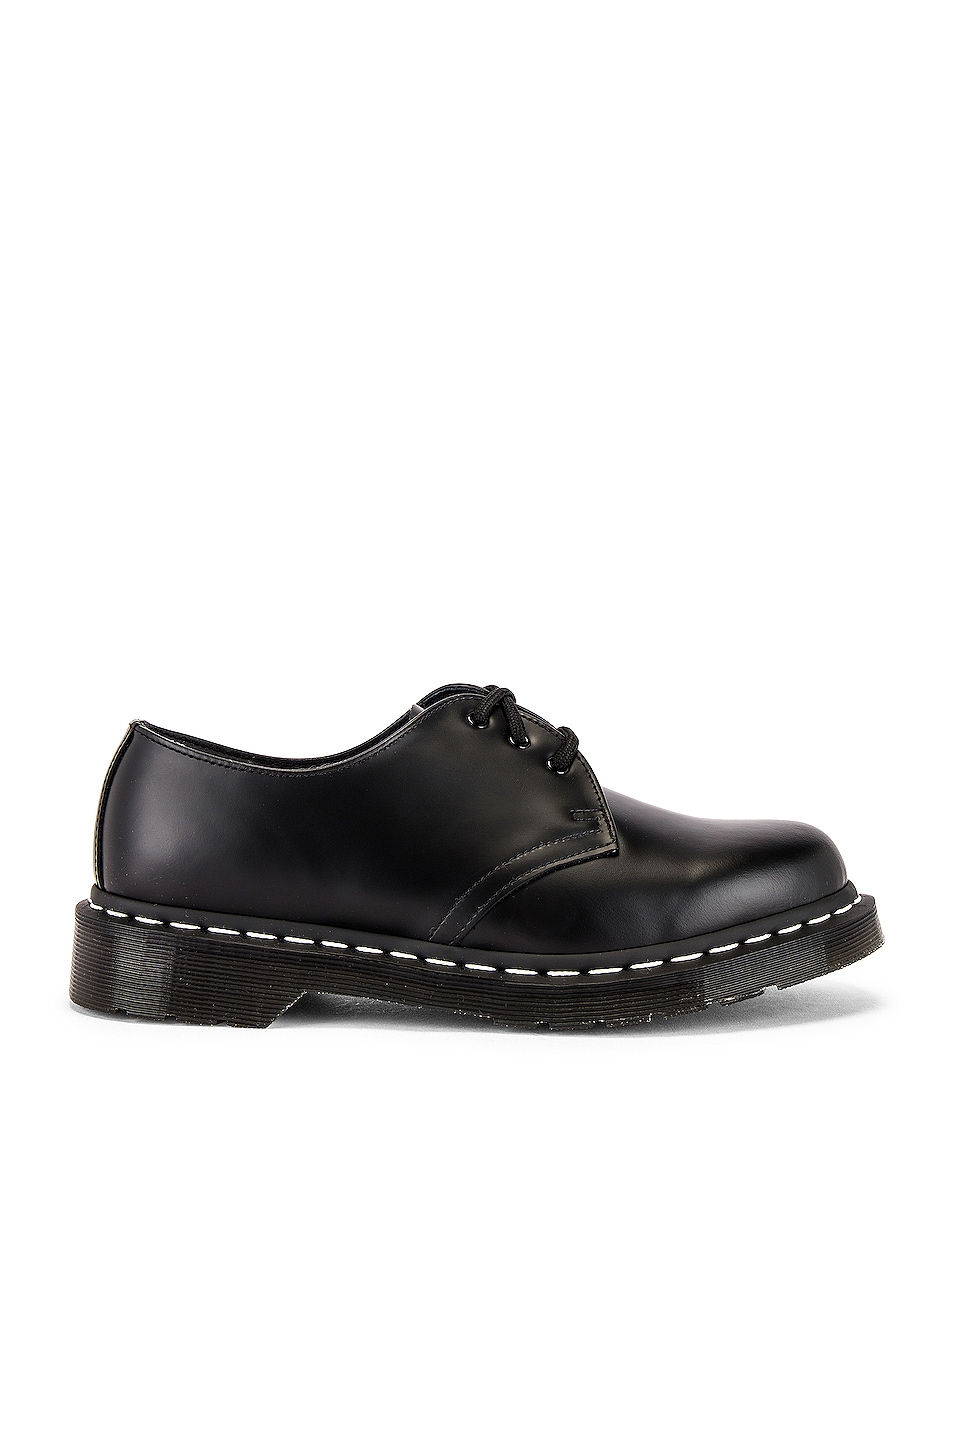 Image 1 of Dr. Martens 1461 White Stitch Shoe in Black